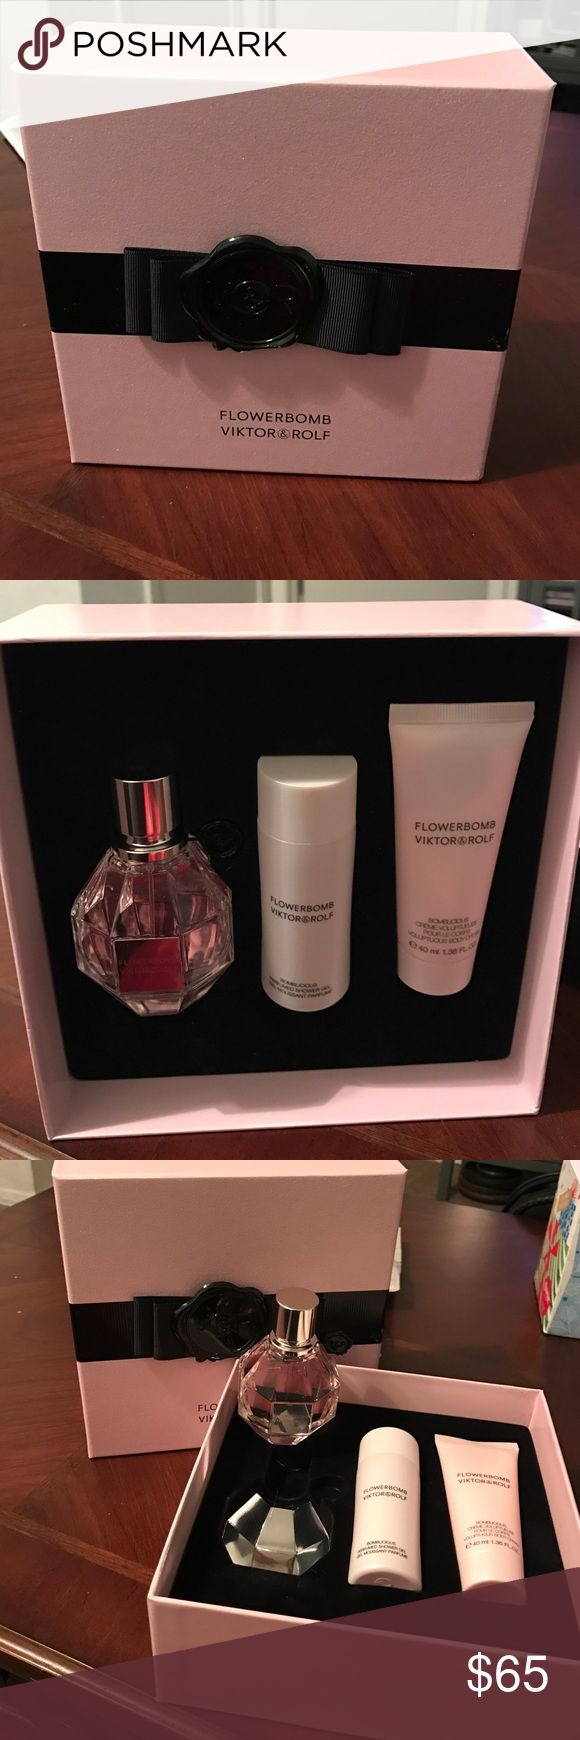 FLOWERBOMB Viktor &Rolf Set New perfume set;  the perfume is 1.7 FL OZ, and it also comes with a shower gel and body cream. Price if firm!!! Viktor & Rolf Accessories